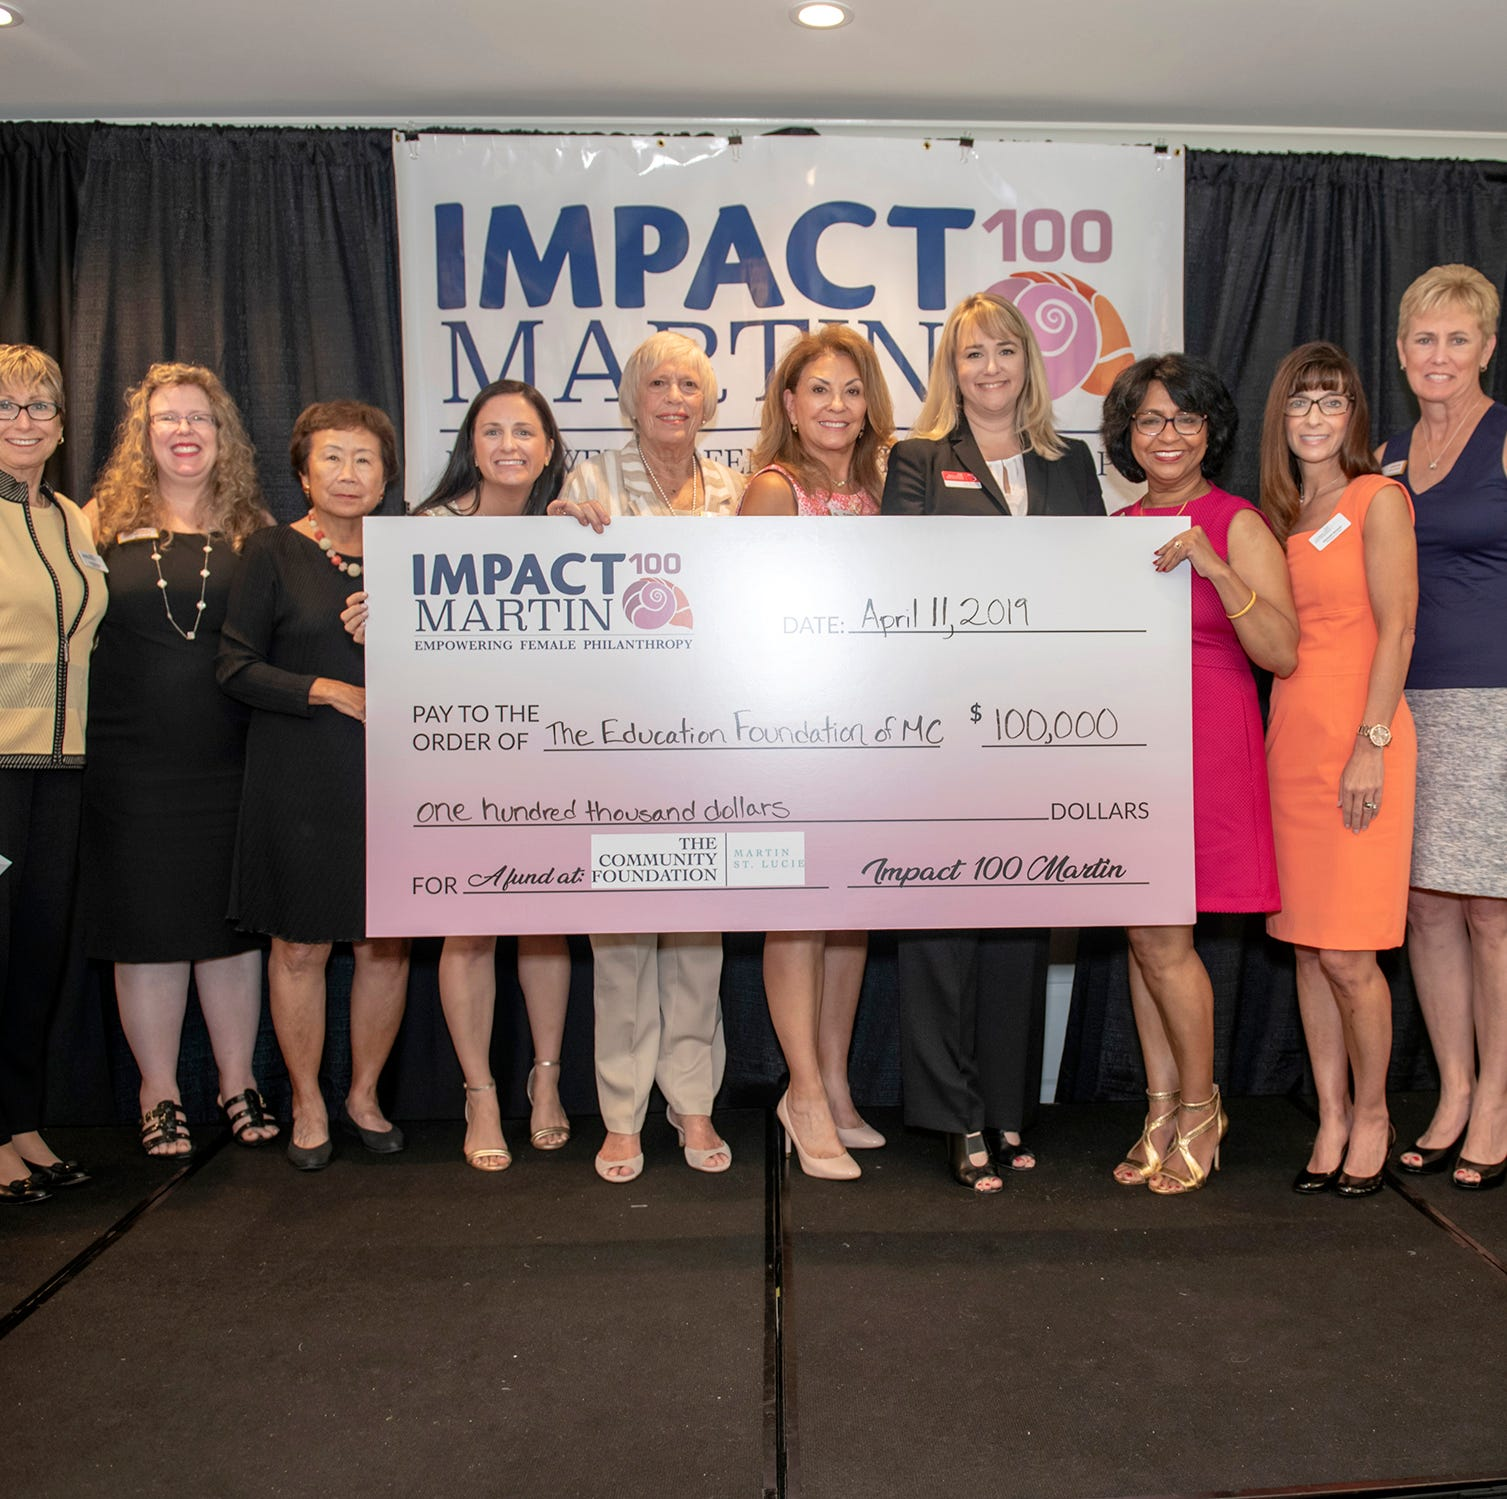 Education Foundation of Martin County takes home $100,000 Impact 100 grant